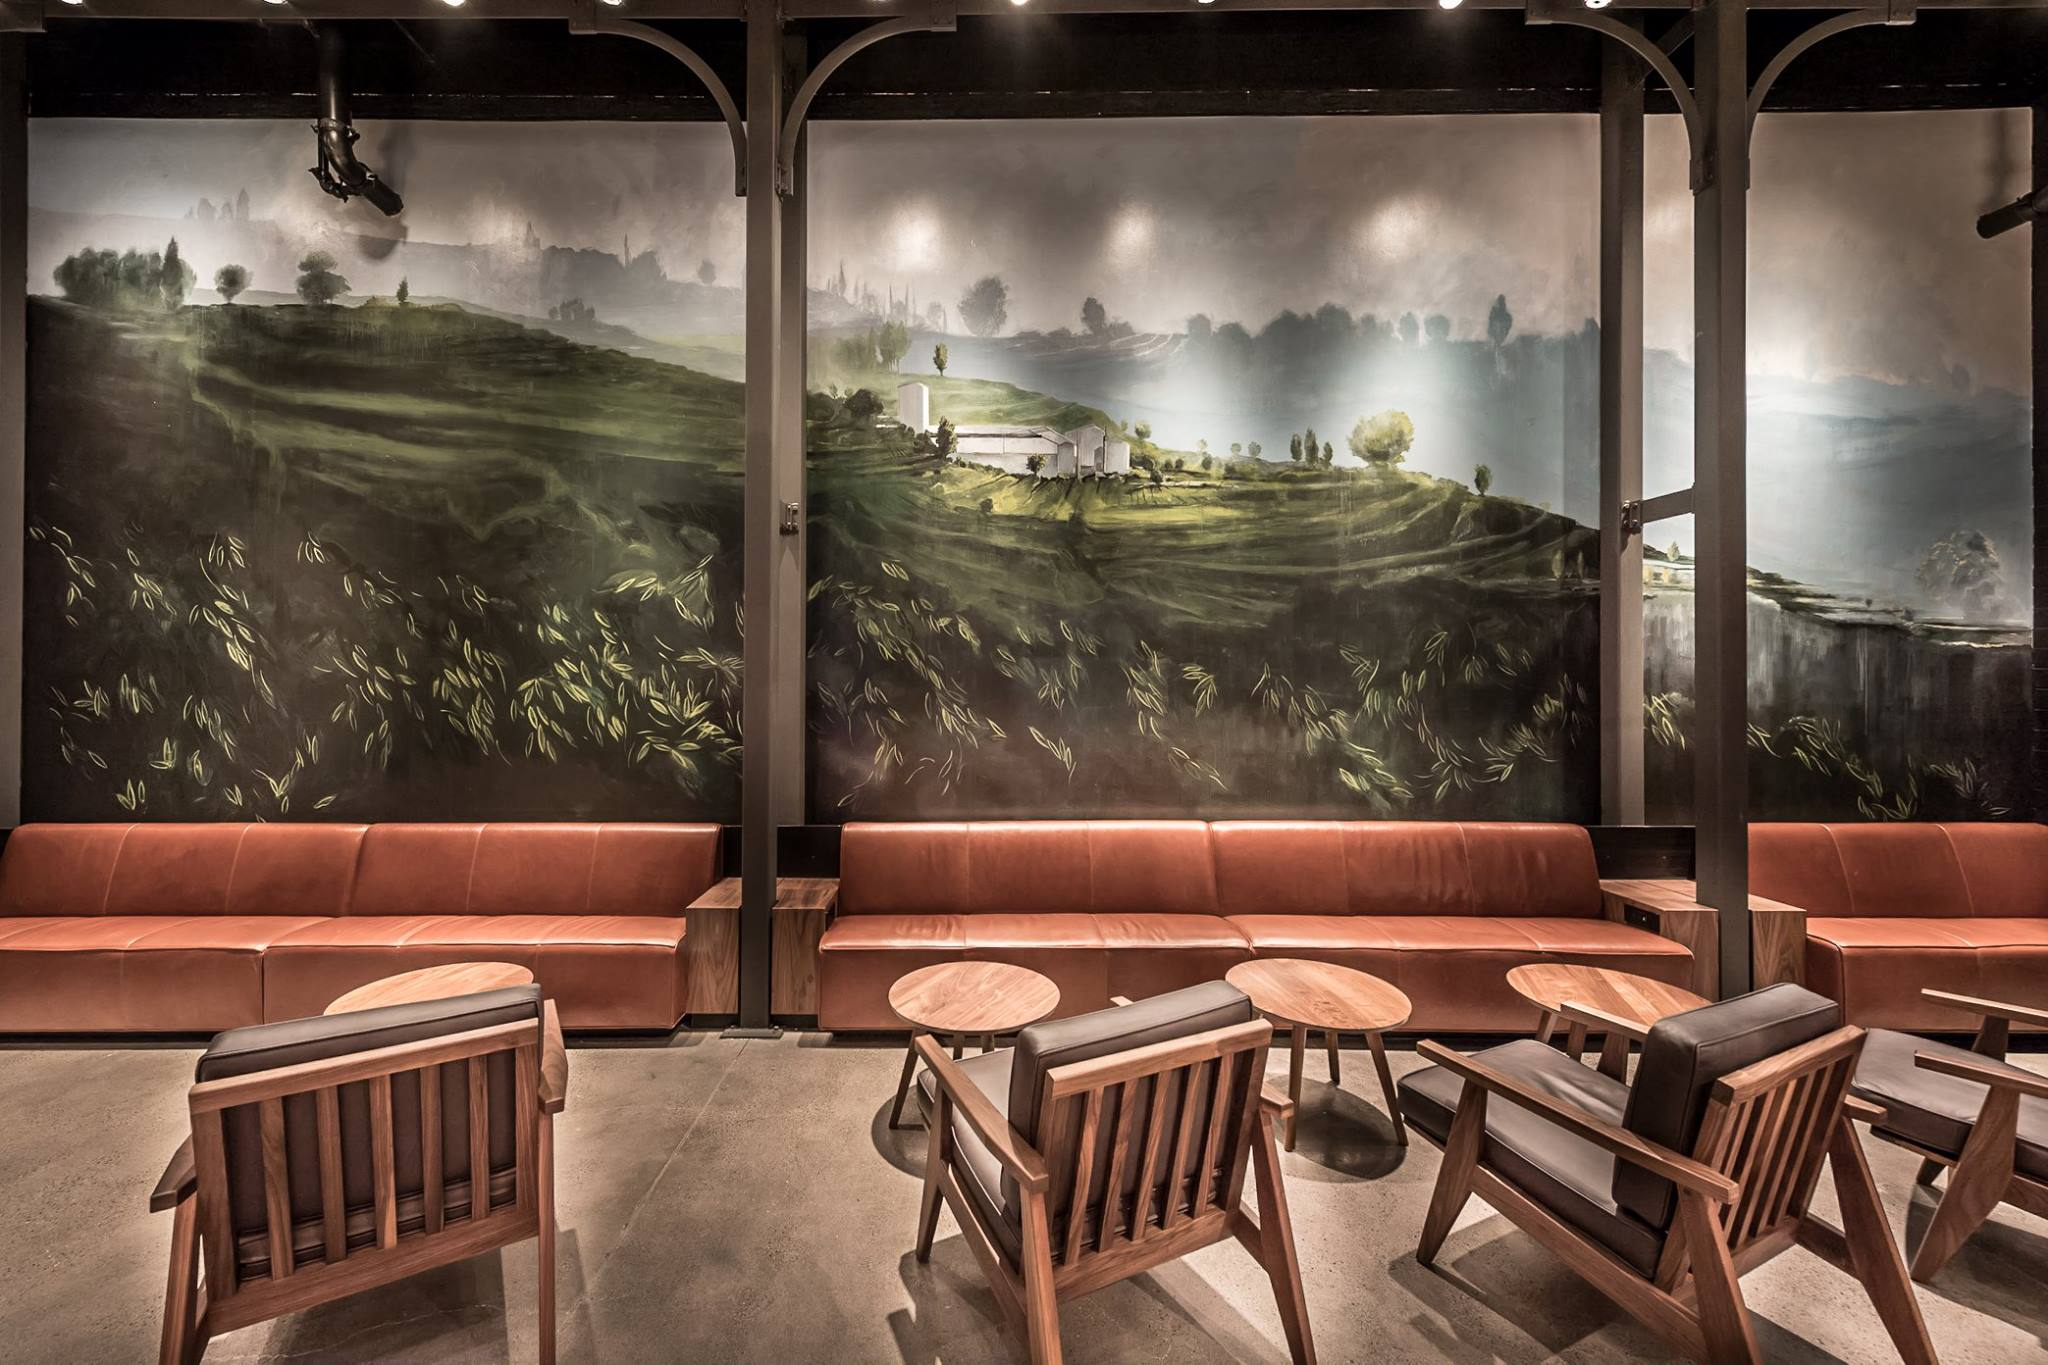 STARBUCKS NAPERVILLE - Curated by Indiewalls